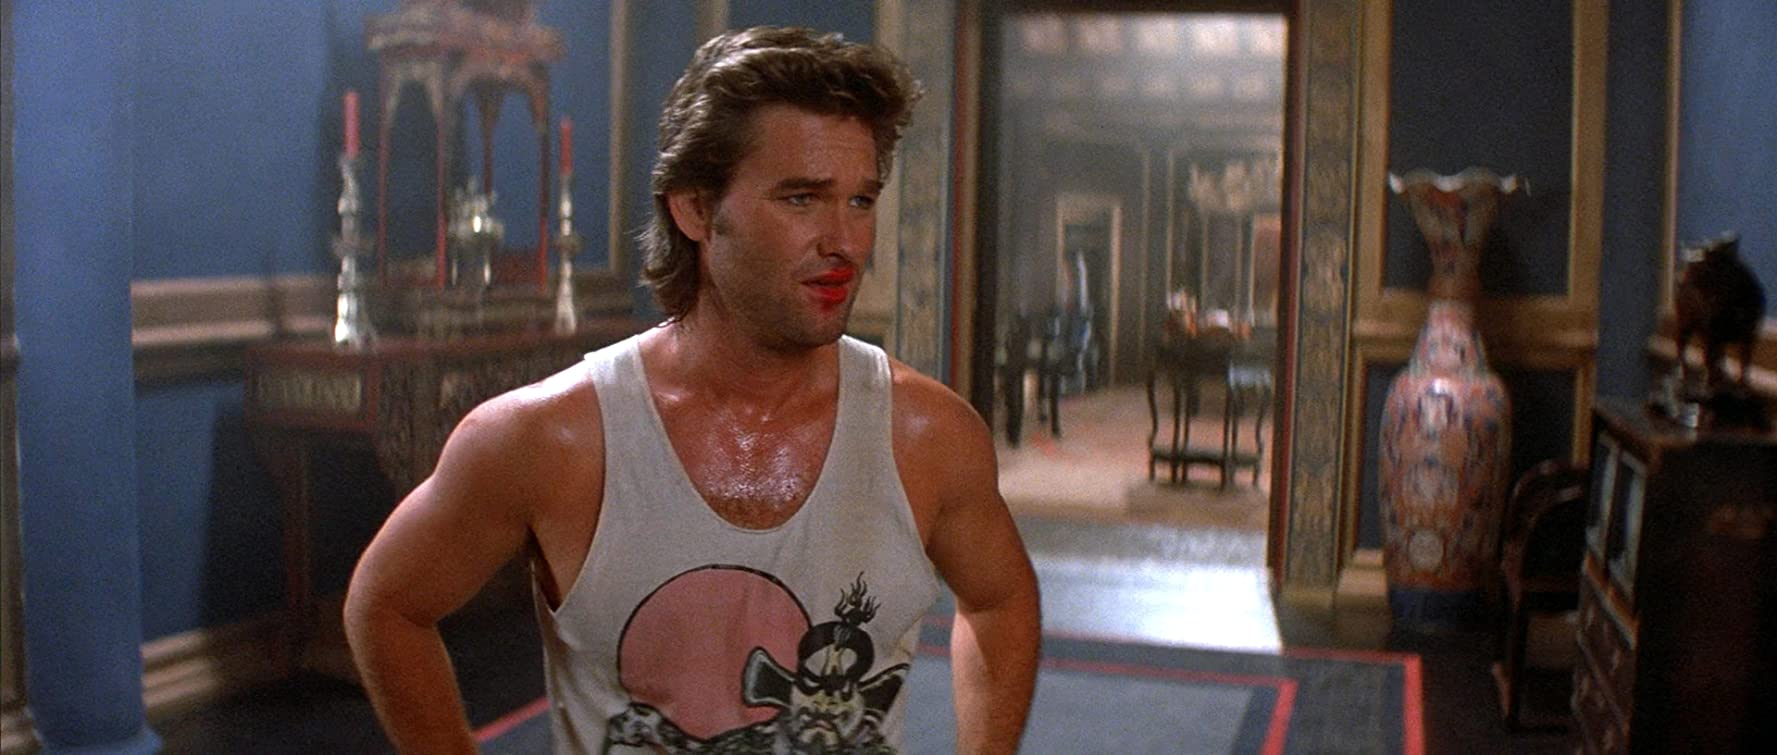 Kurt Russell in Big Trouble in Little China (1986)